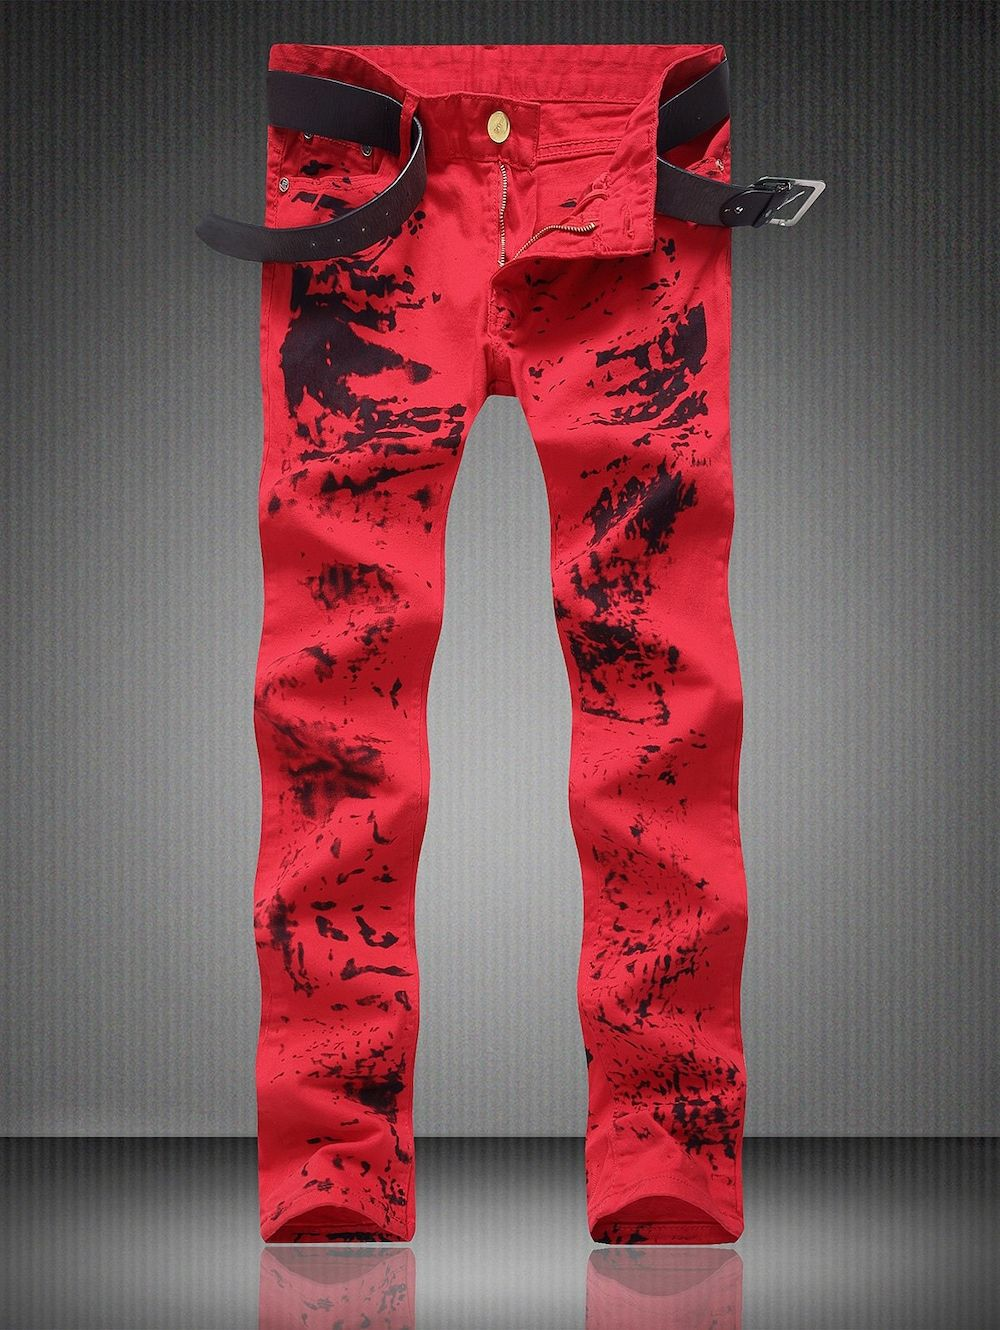 Zipper Fly Pocket Paint Splatter Straight Jeans is part of Emo Clothes Cheap - Cheap Fashion online retailer providing customers trendy and stylish clothing including different categories such as dresses, tops, swimwear